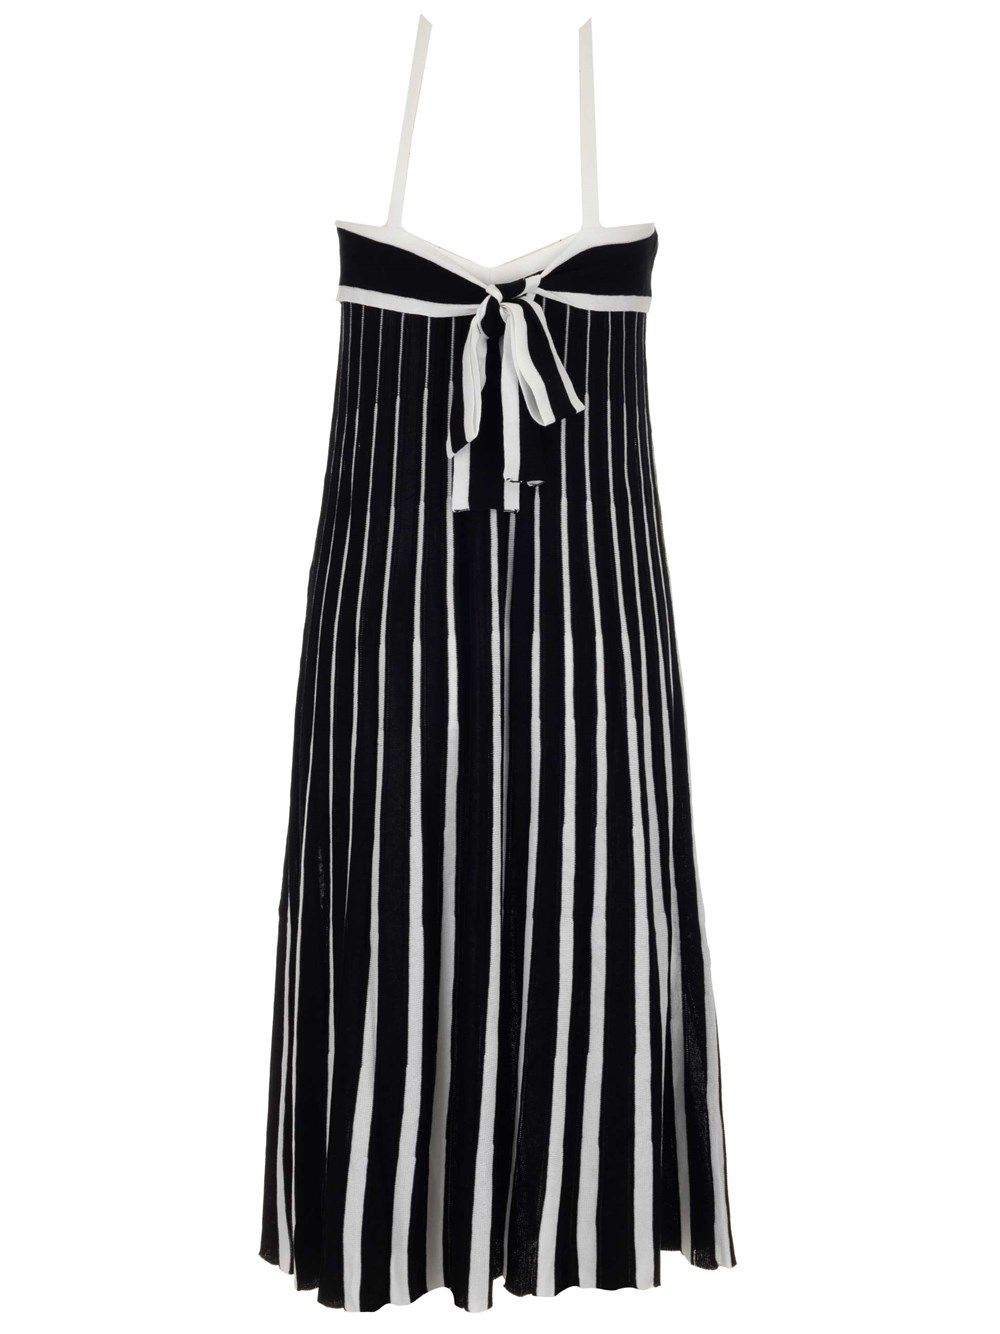 RED VALENTINO Cottons RED VALENTINO WOMEN'S BLACK OTHER MATERIALS DRESS